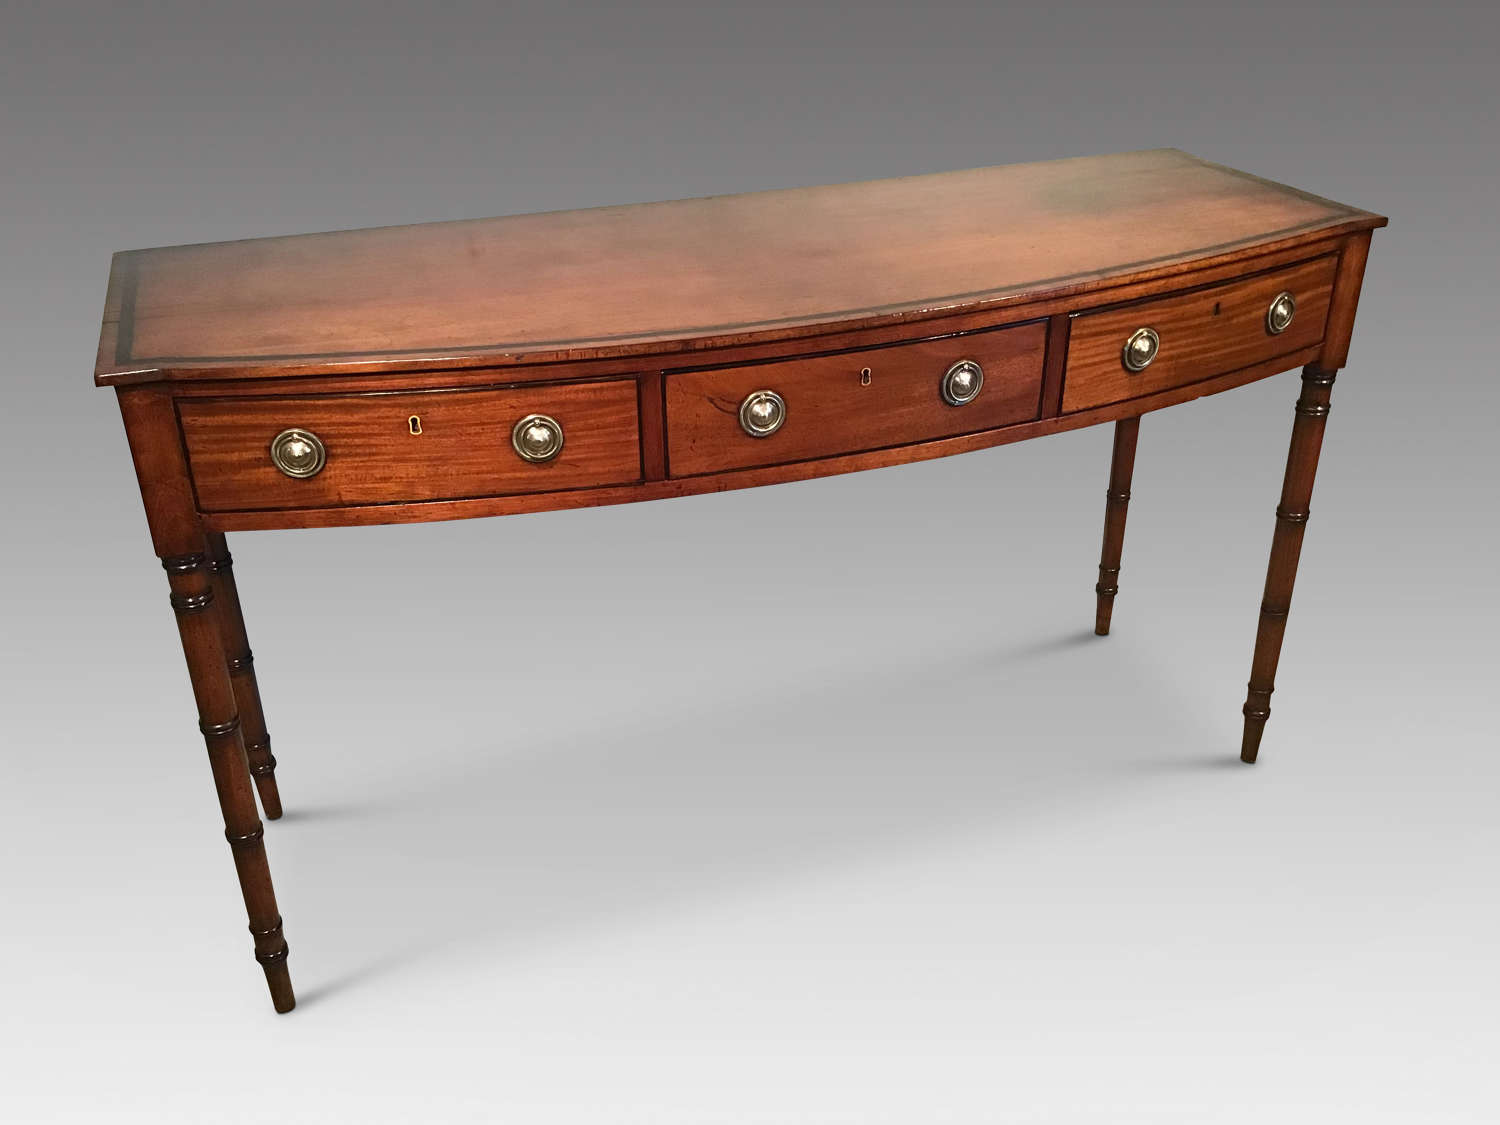 Antique mahogany serving table